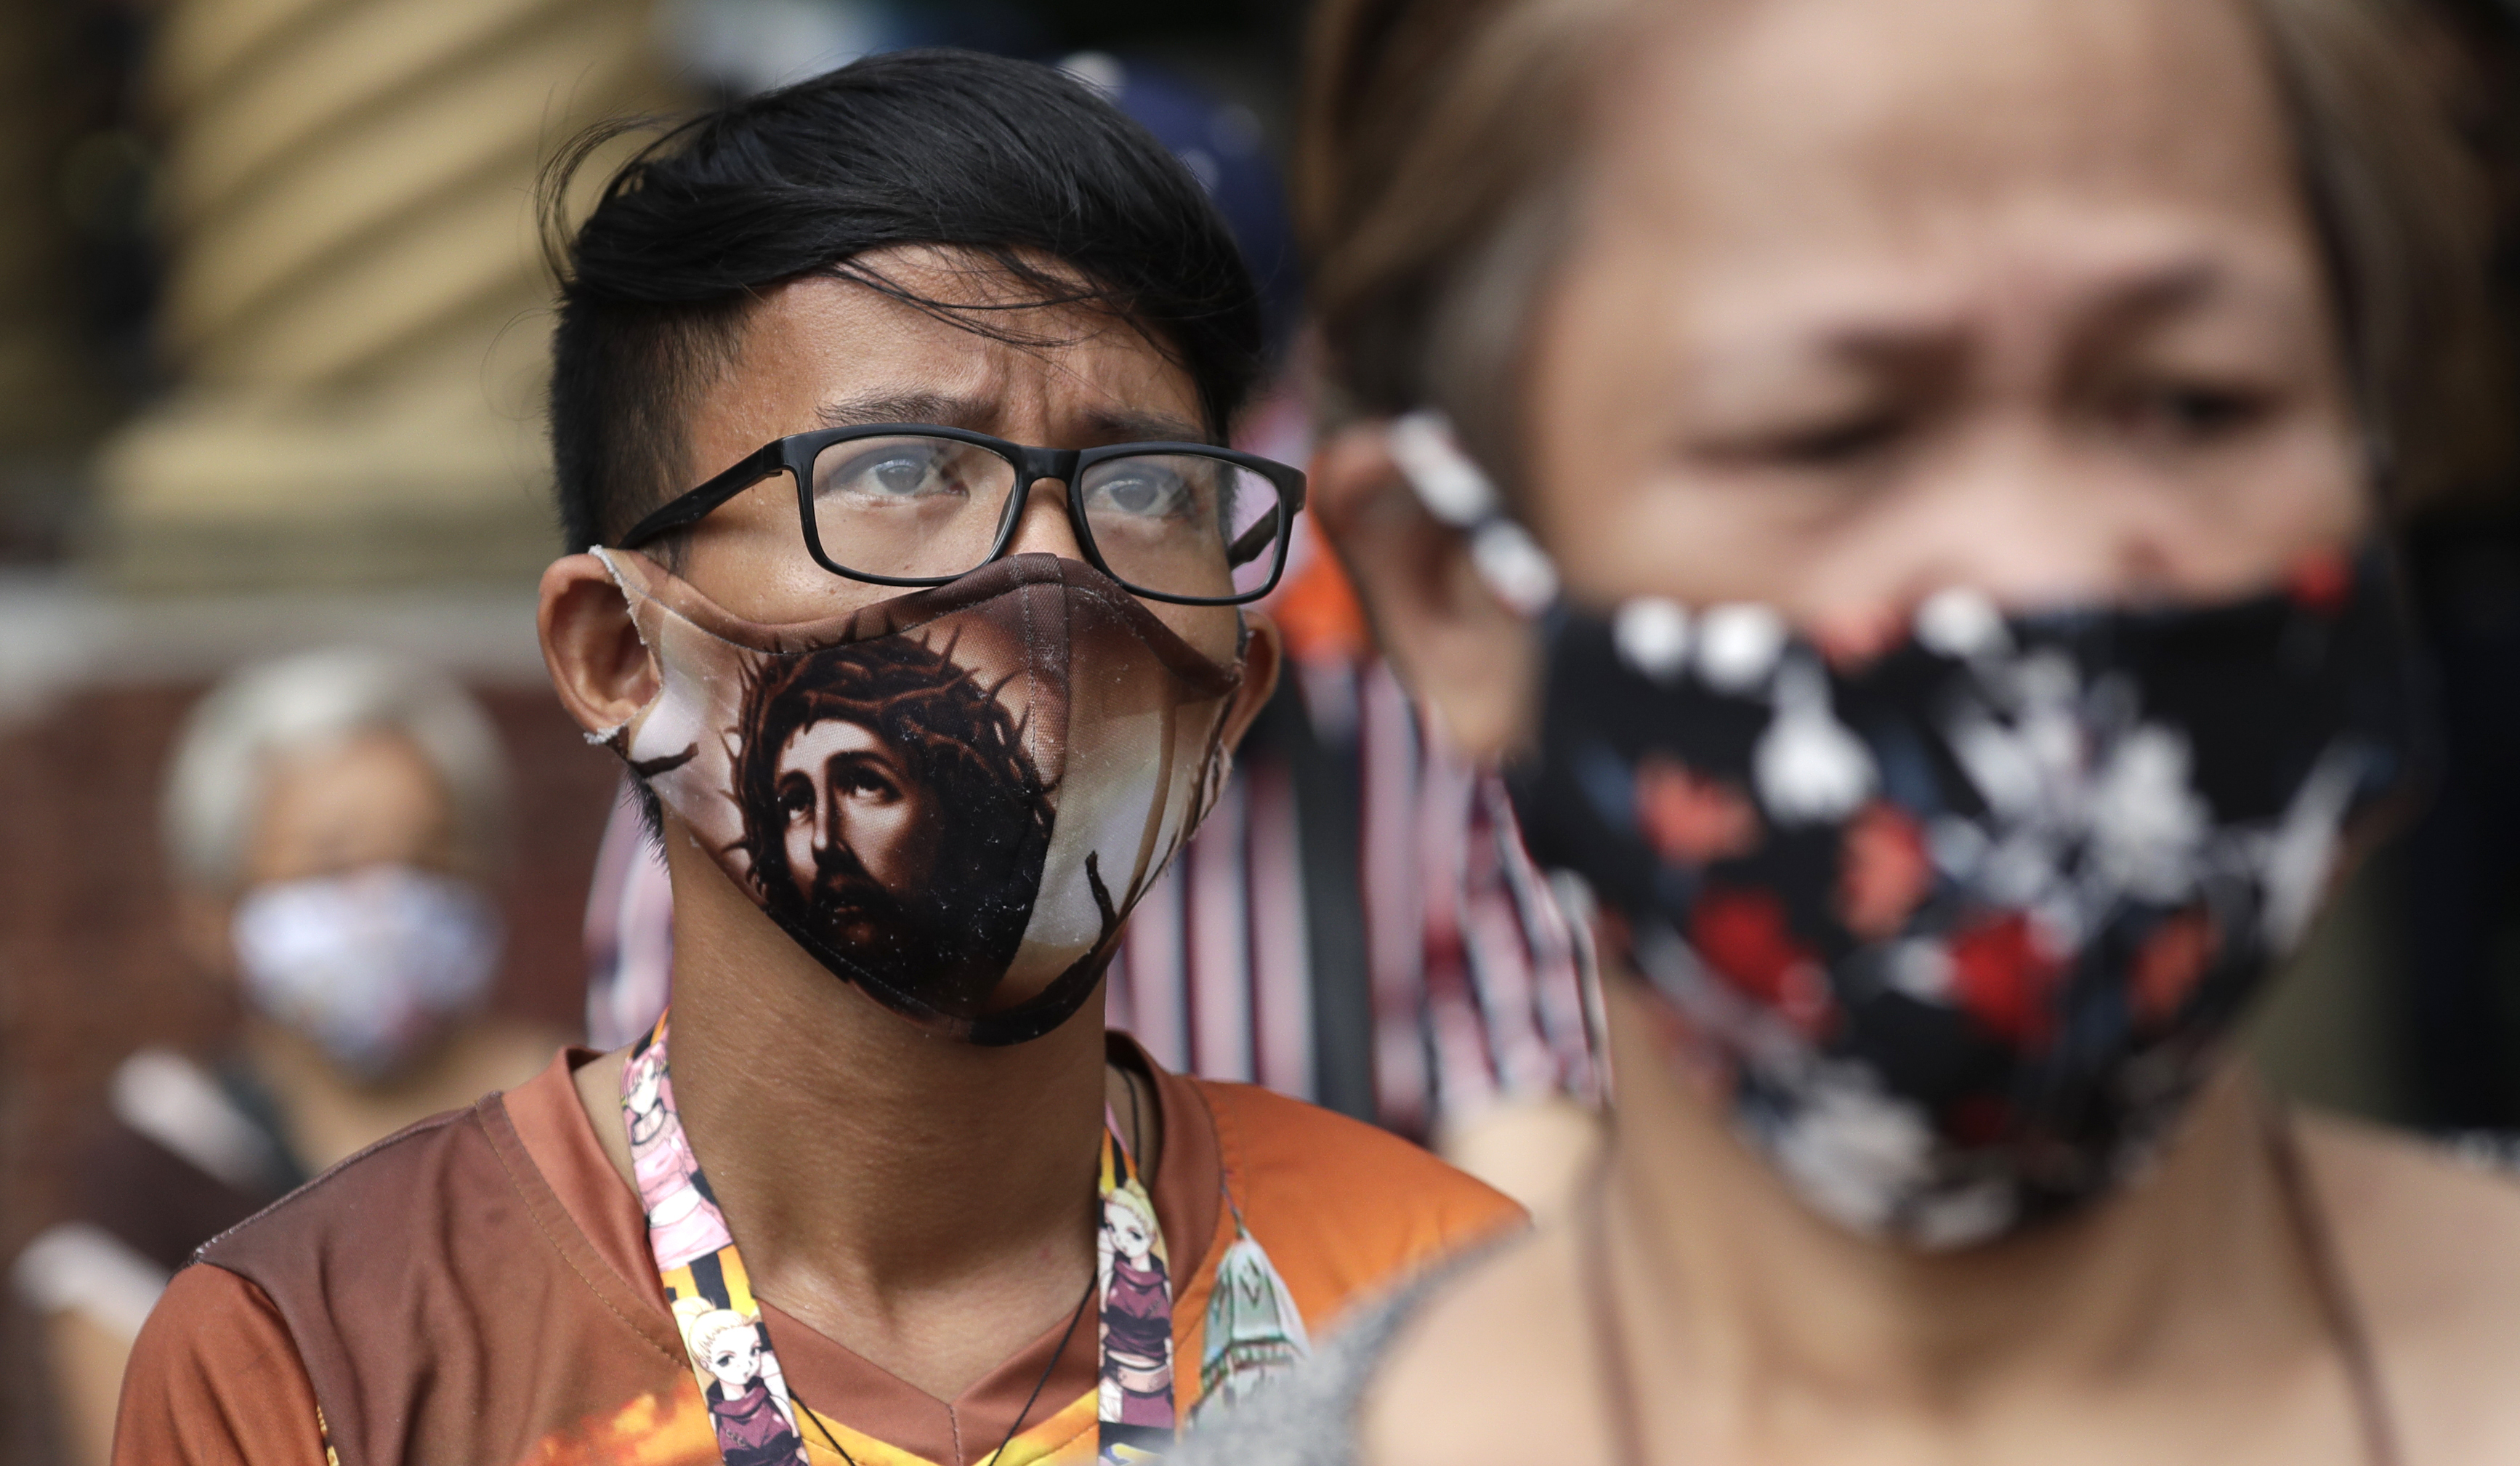 """A devotee wearing a protective mask bearing the face of Jesus Christ waits outside the Minor Basilica of the Black Nazarene, popularly known as Quiapo church, as it slowly reopens its doors in downtown Manila, Philippines on Friday, June 5, 2020. President Rodrigo Duterte has expressed relief that """"Filipinos are really law-abiding"""" and that the Philippines was not going through riots like America which would make coronavirus quarantine enforcement formidable. (AP Photo/Aaron Favila)"""